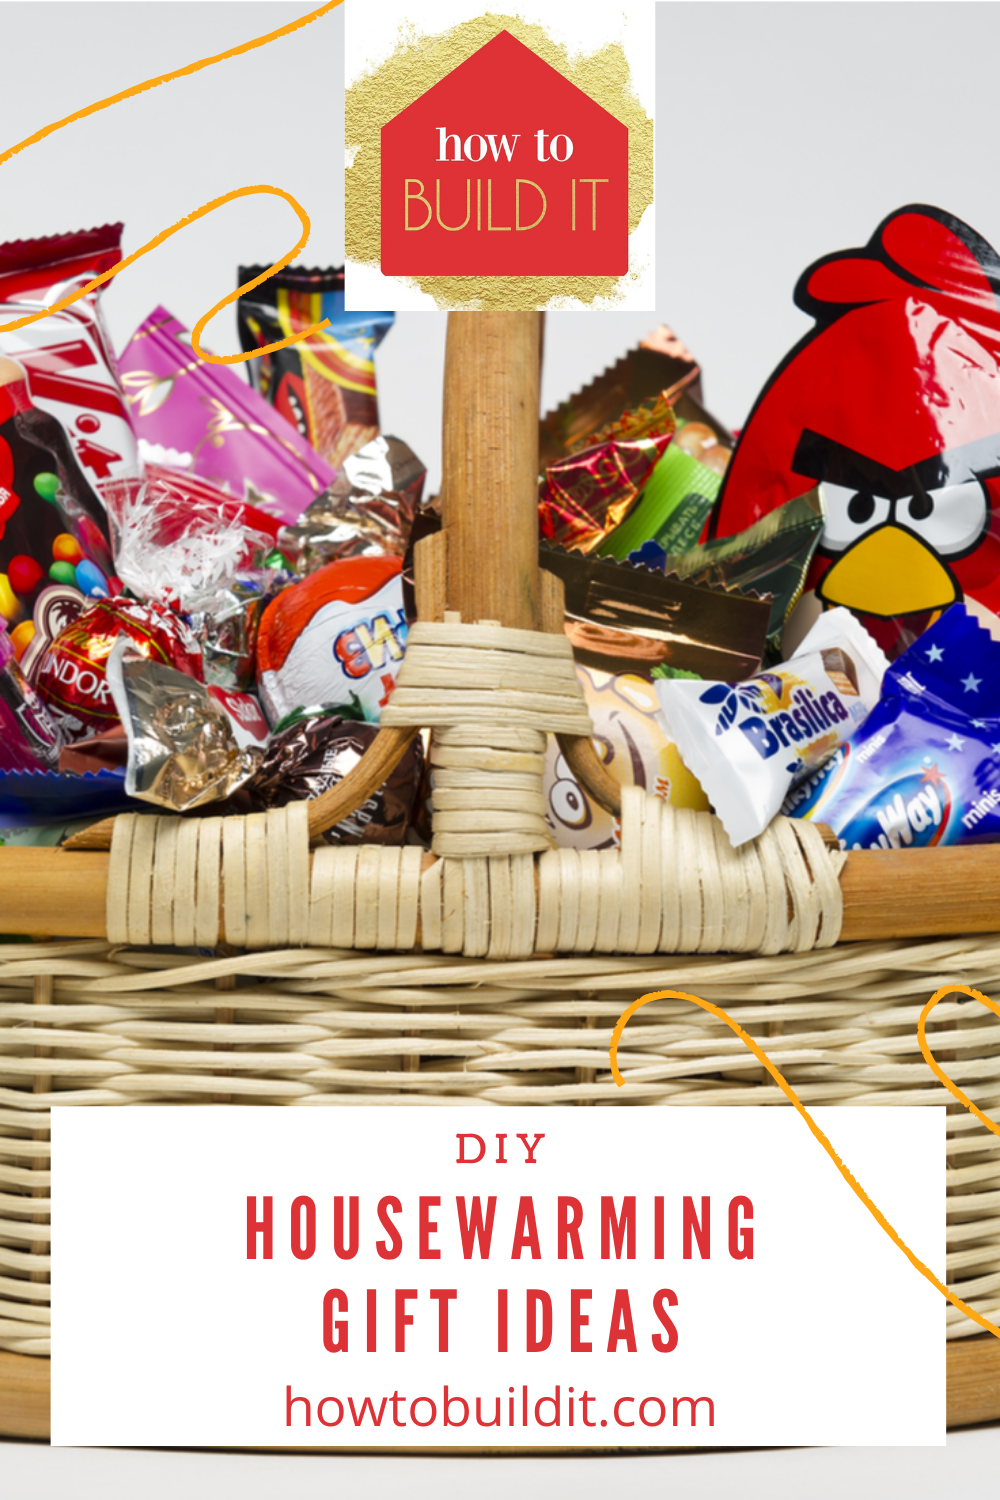 Housewarming Gift Ideas First Home Baskets Diy Home Decor And Design Howtobuildit Org House Warming Gifts House Warming Gift Diy Best Housewarming Gifts